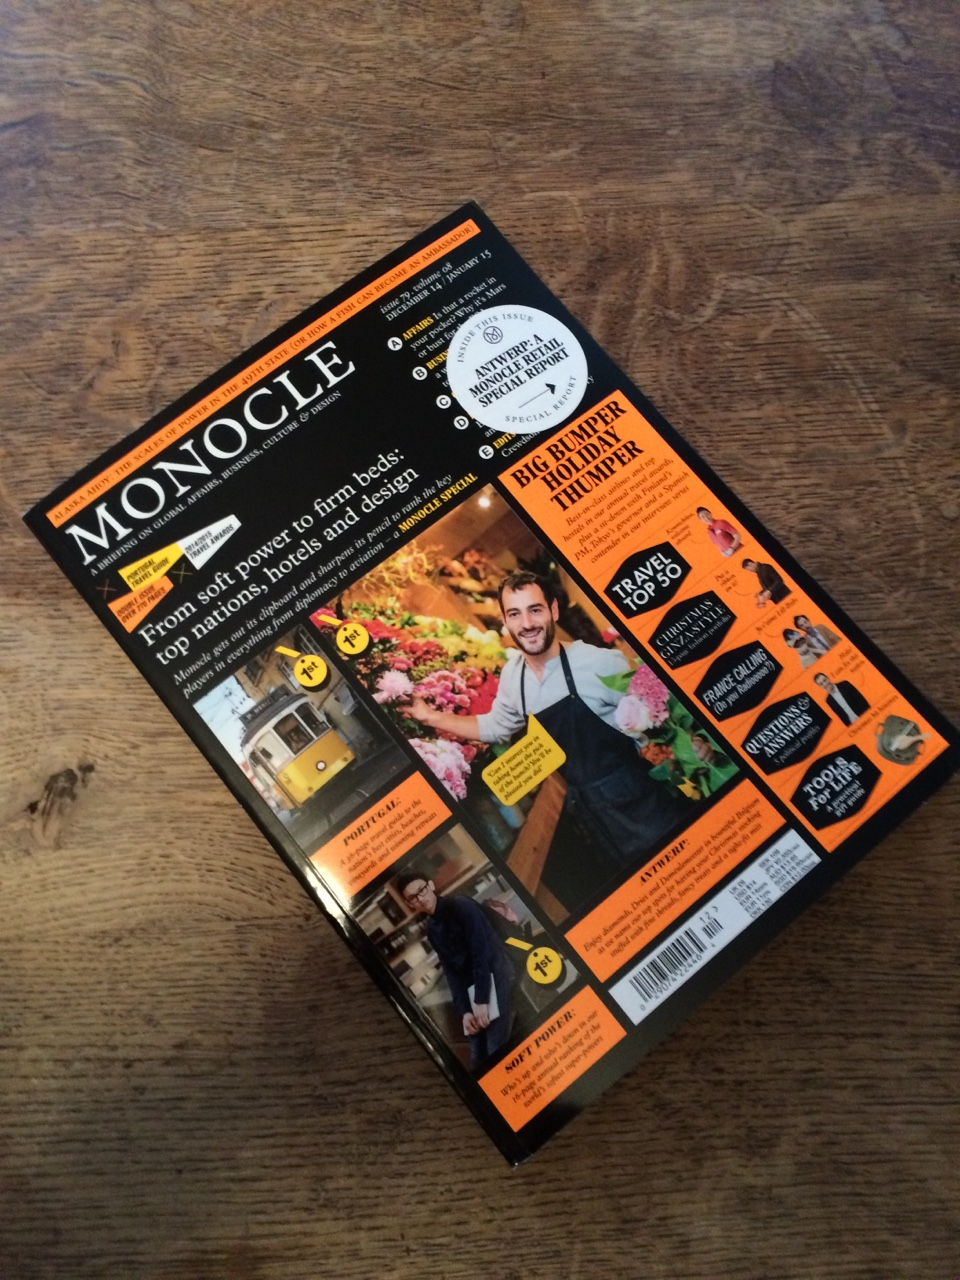 Been a busy month for editorial photography. Happy to see the smiley Antwerp florist I shot ended up on the front of this month's Monocle magazine.